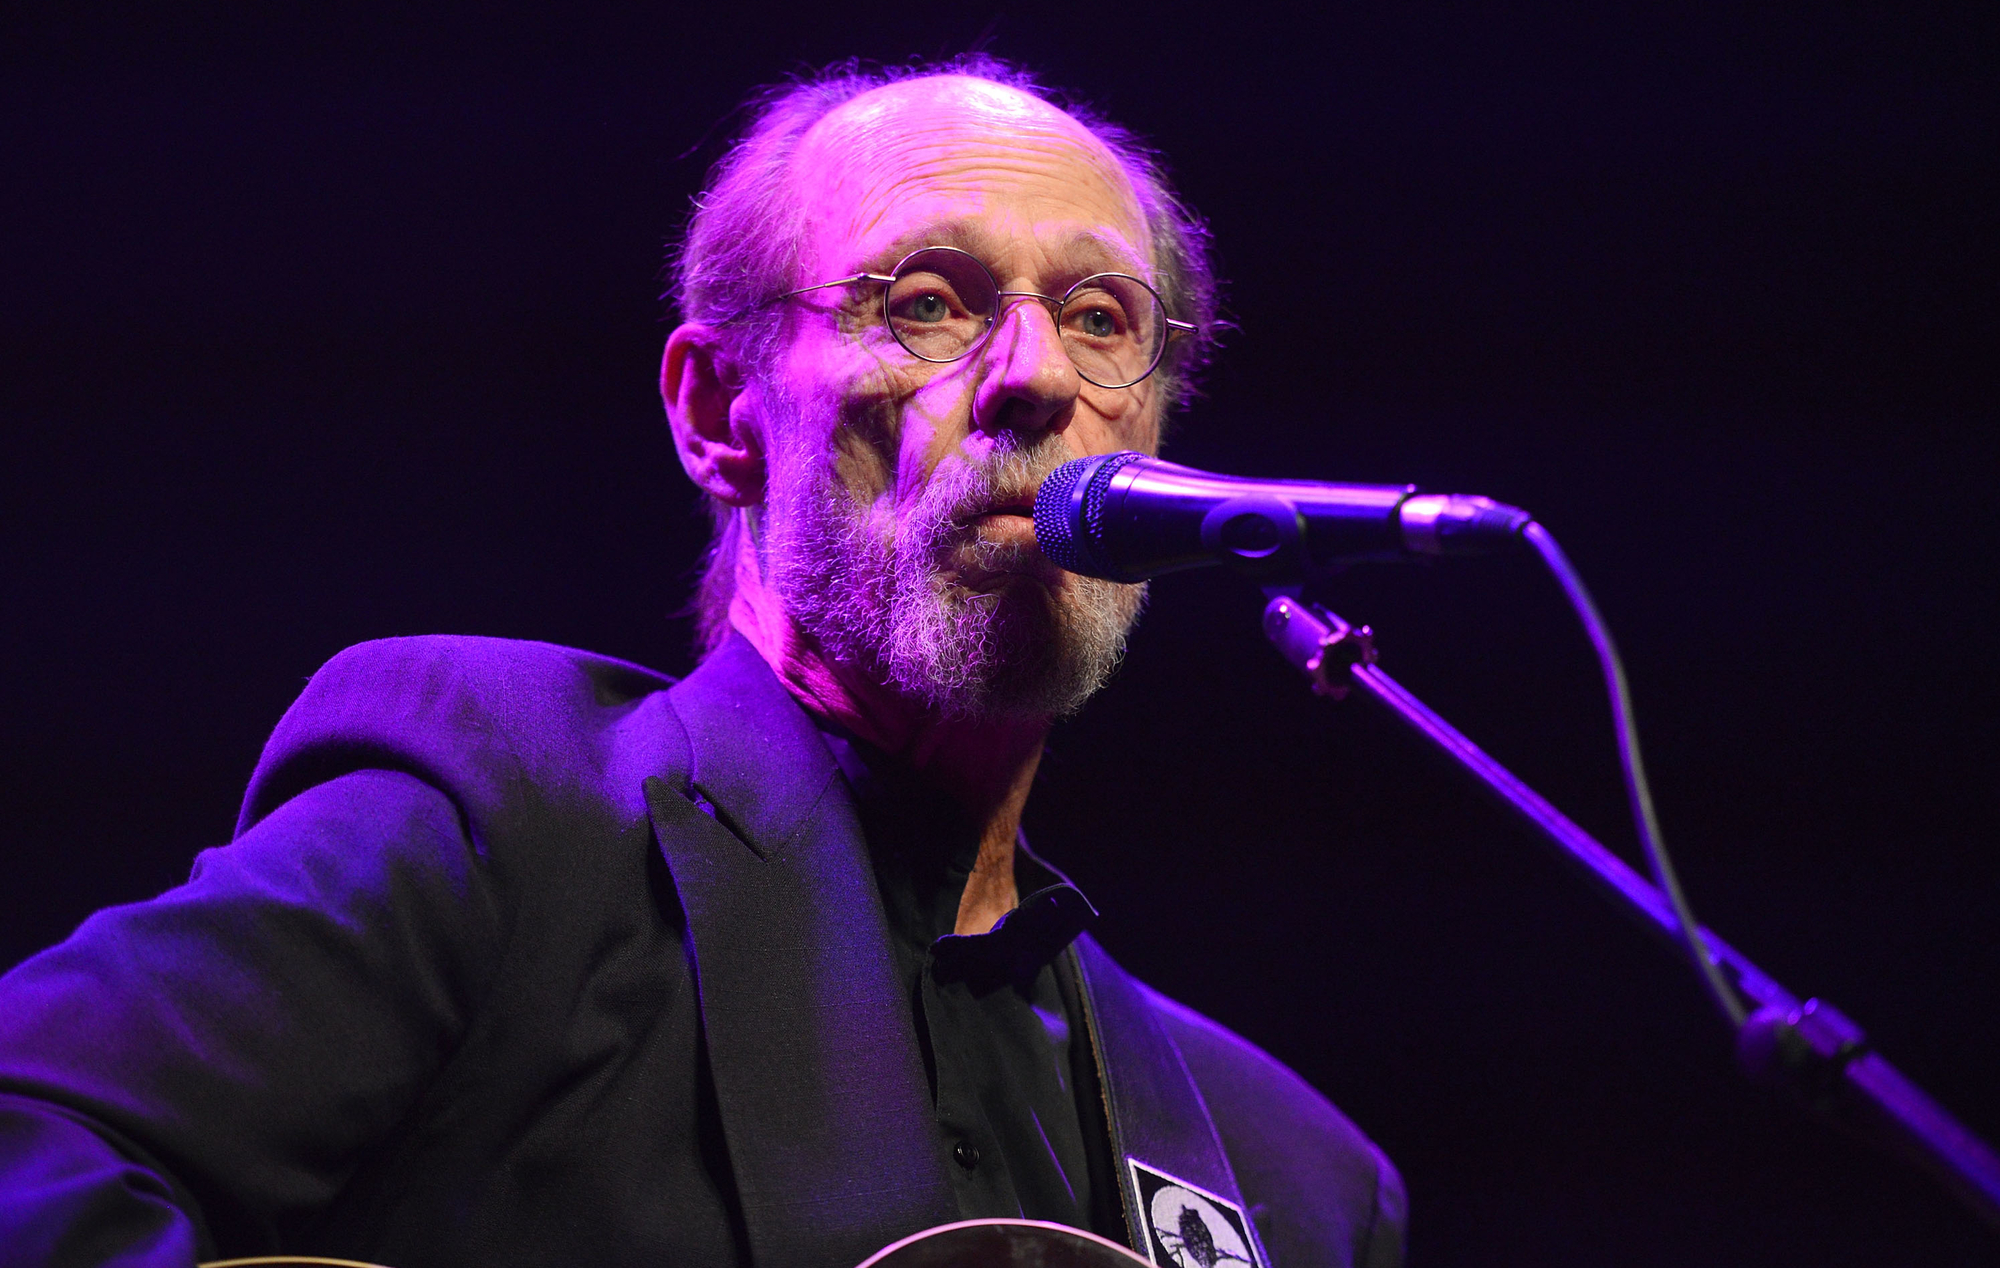 Paul Barrere, singer and guitarist of Little Feat, has died